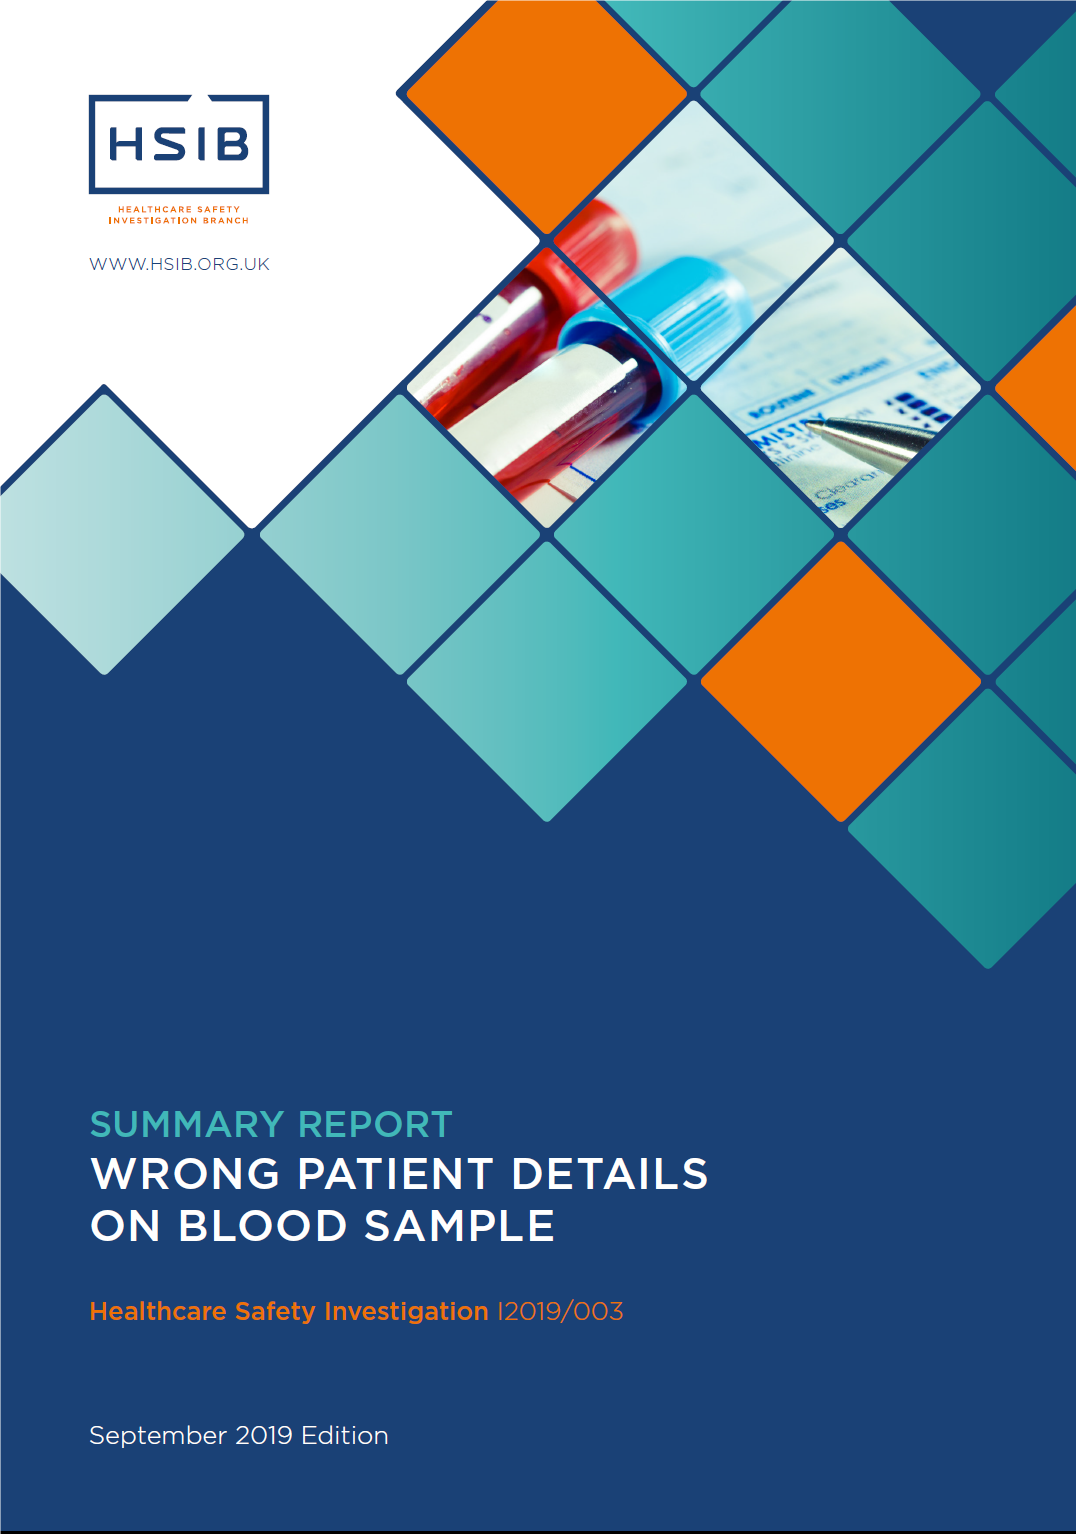 HSIB Report wrong blood sample